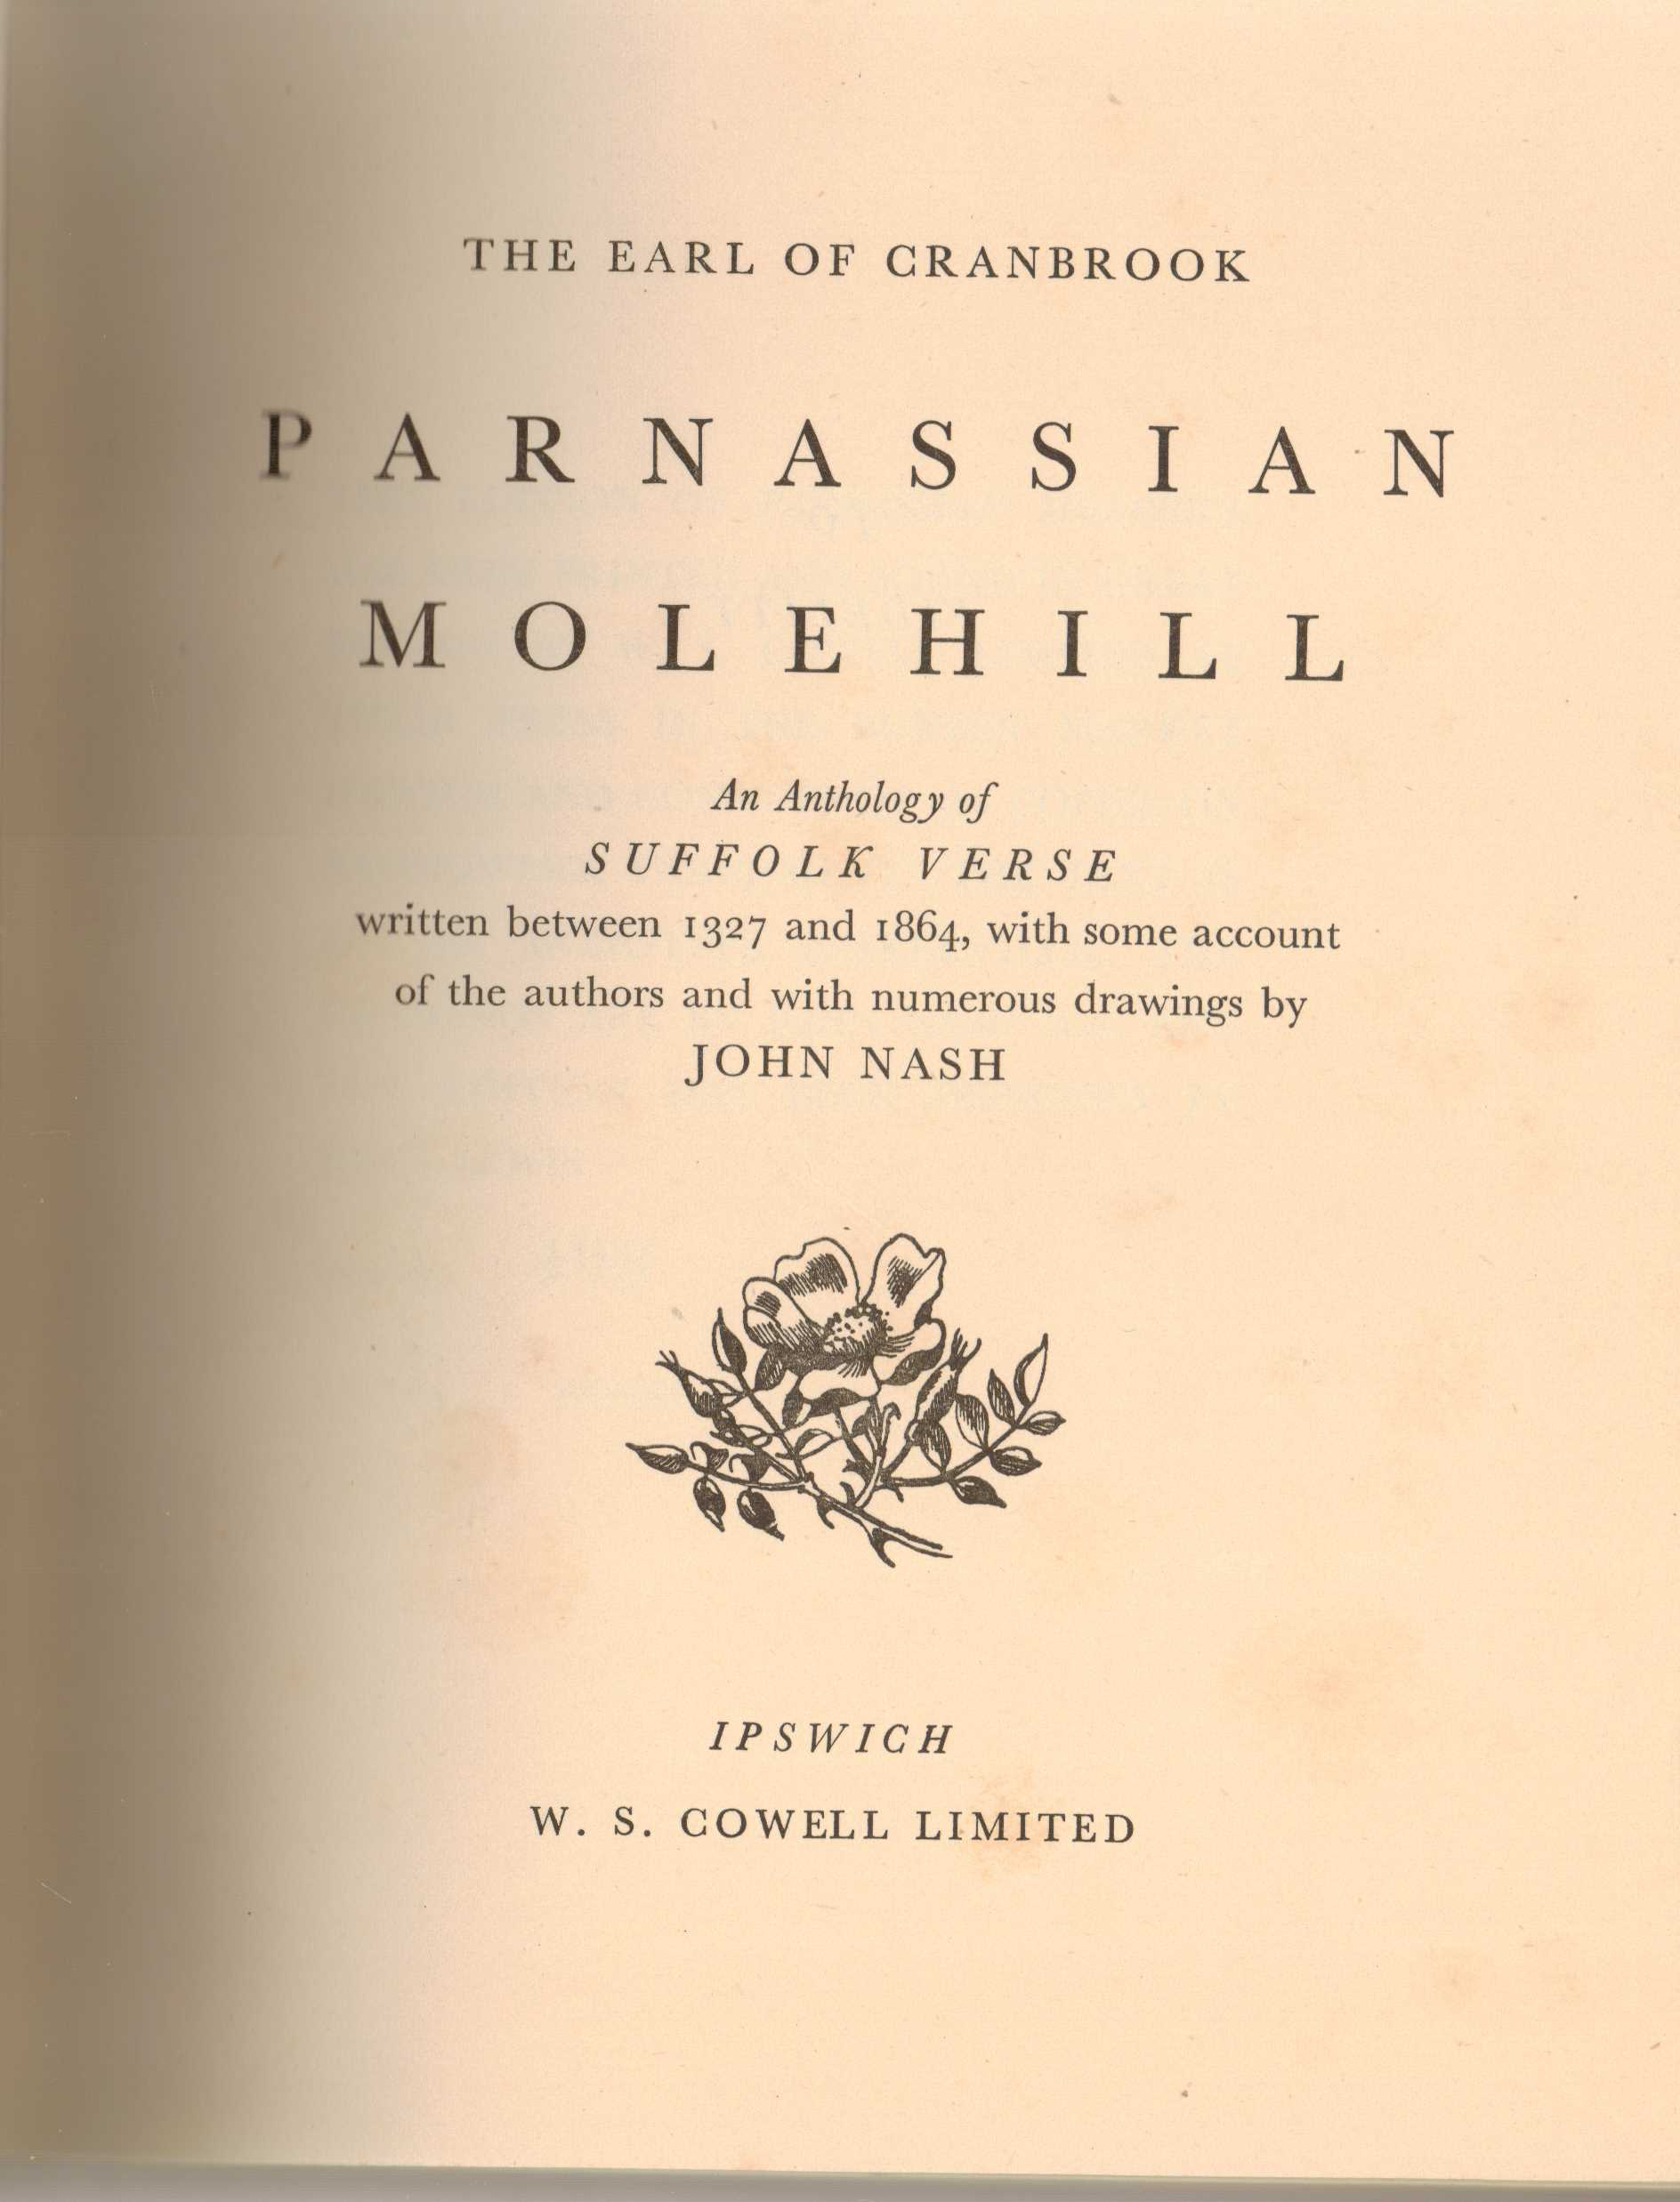 Image for Parnassian Molehill : An Anthology of Suffolk Verse written between 1327 and 1864, with some account of the authors and with numerous drawings by John Nash